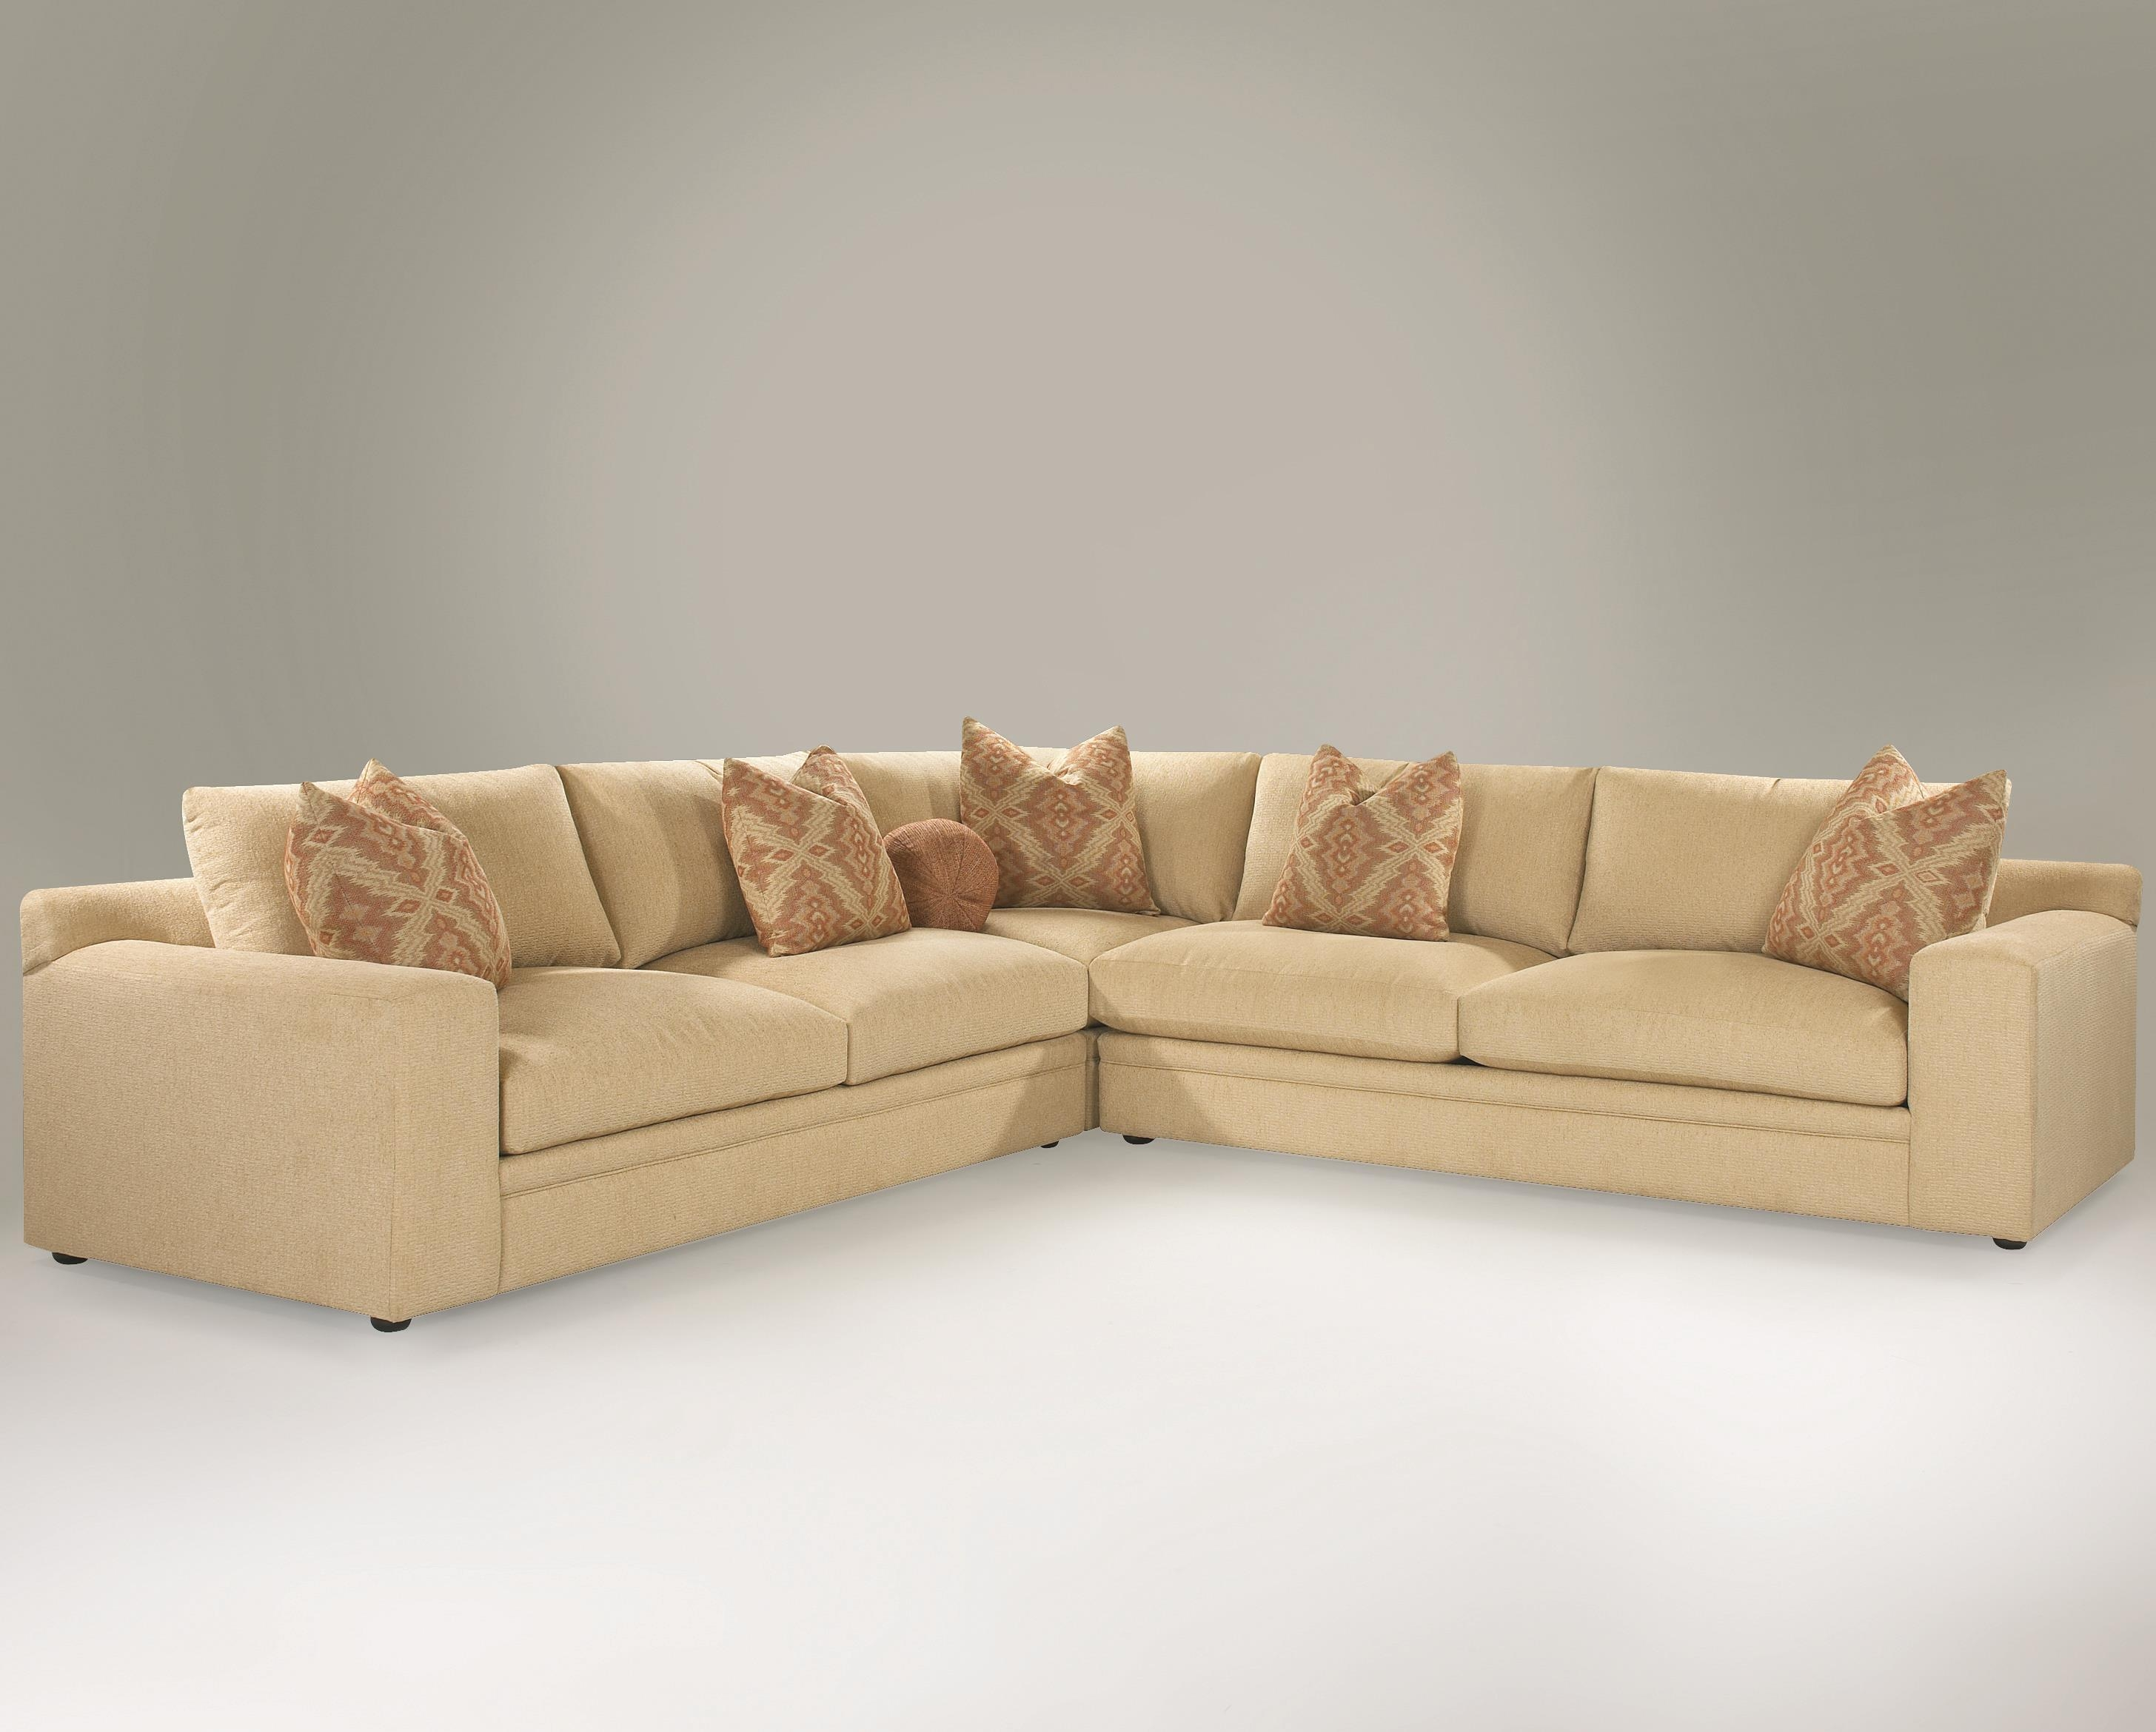 Casual 3 Piece Sectional Sofa With Track Arms And Loose Back With Regard To Loose Pillow Back Sofas (Image 1 of 20)